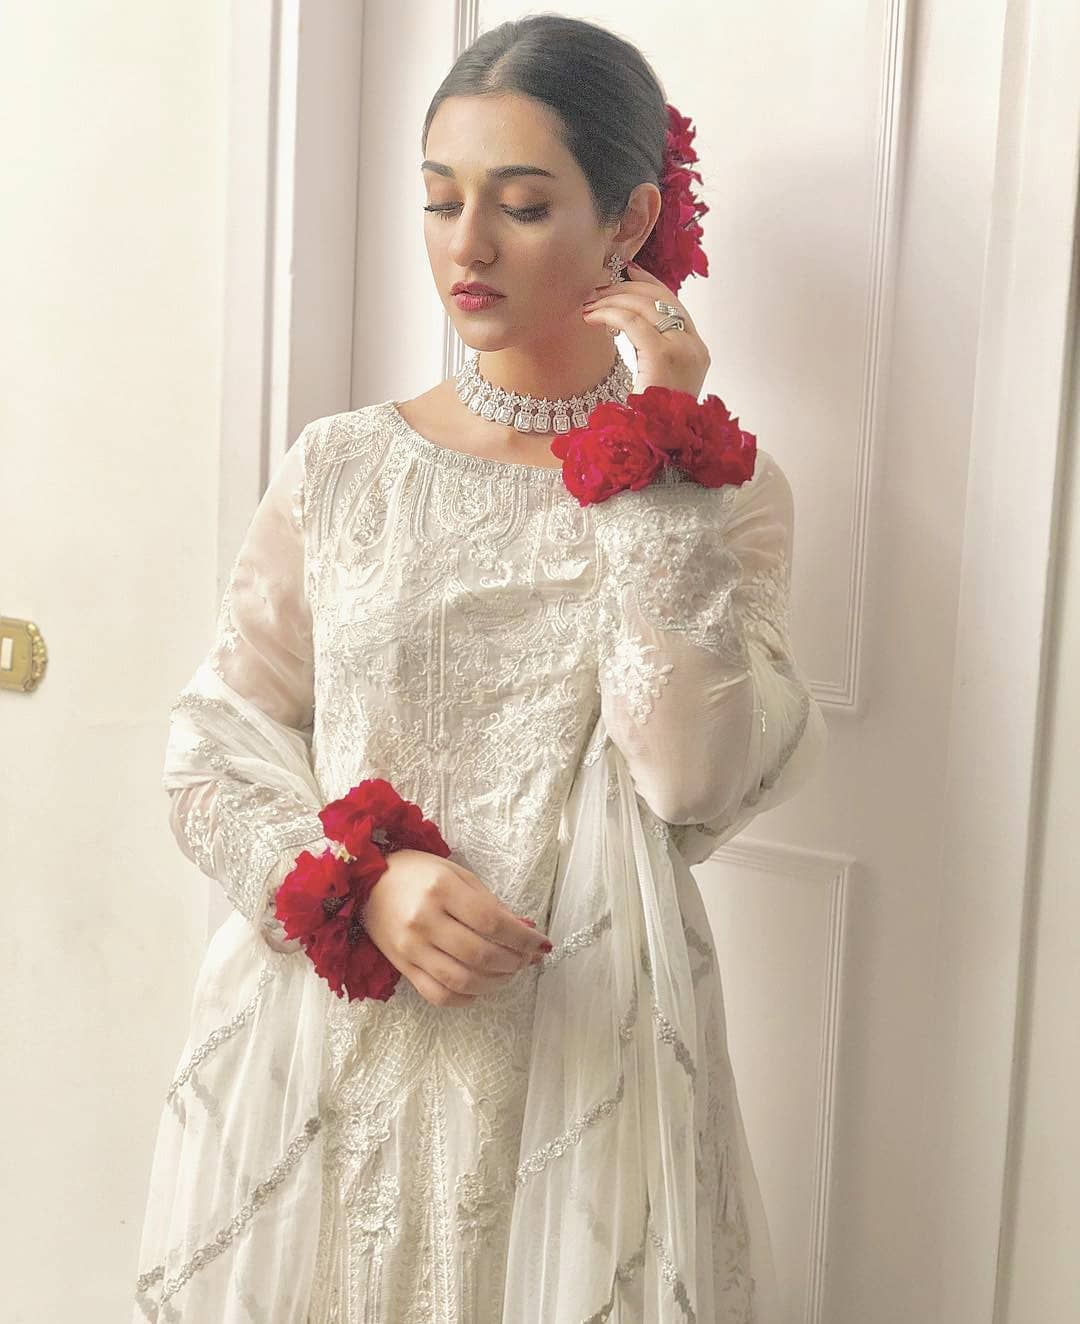 How Stunning Does She Look Sarakhan In An Elegant White Mariabofficial Outfit And G Pakistani Wedding Dresses Pakistani Bridal Dresses Pakistani White Dress